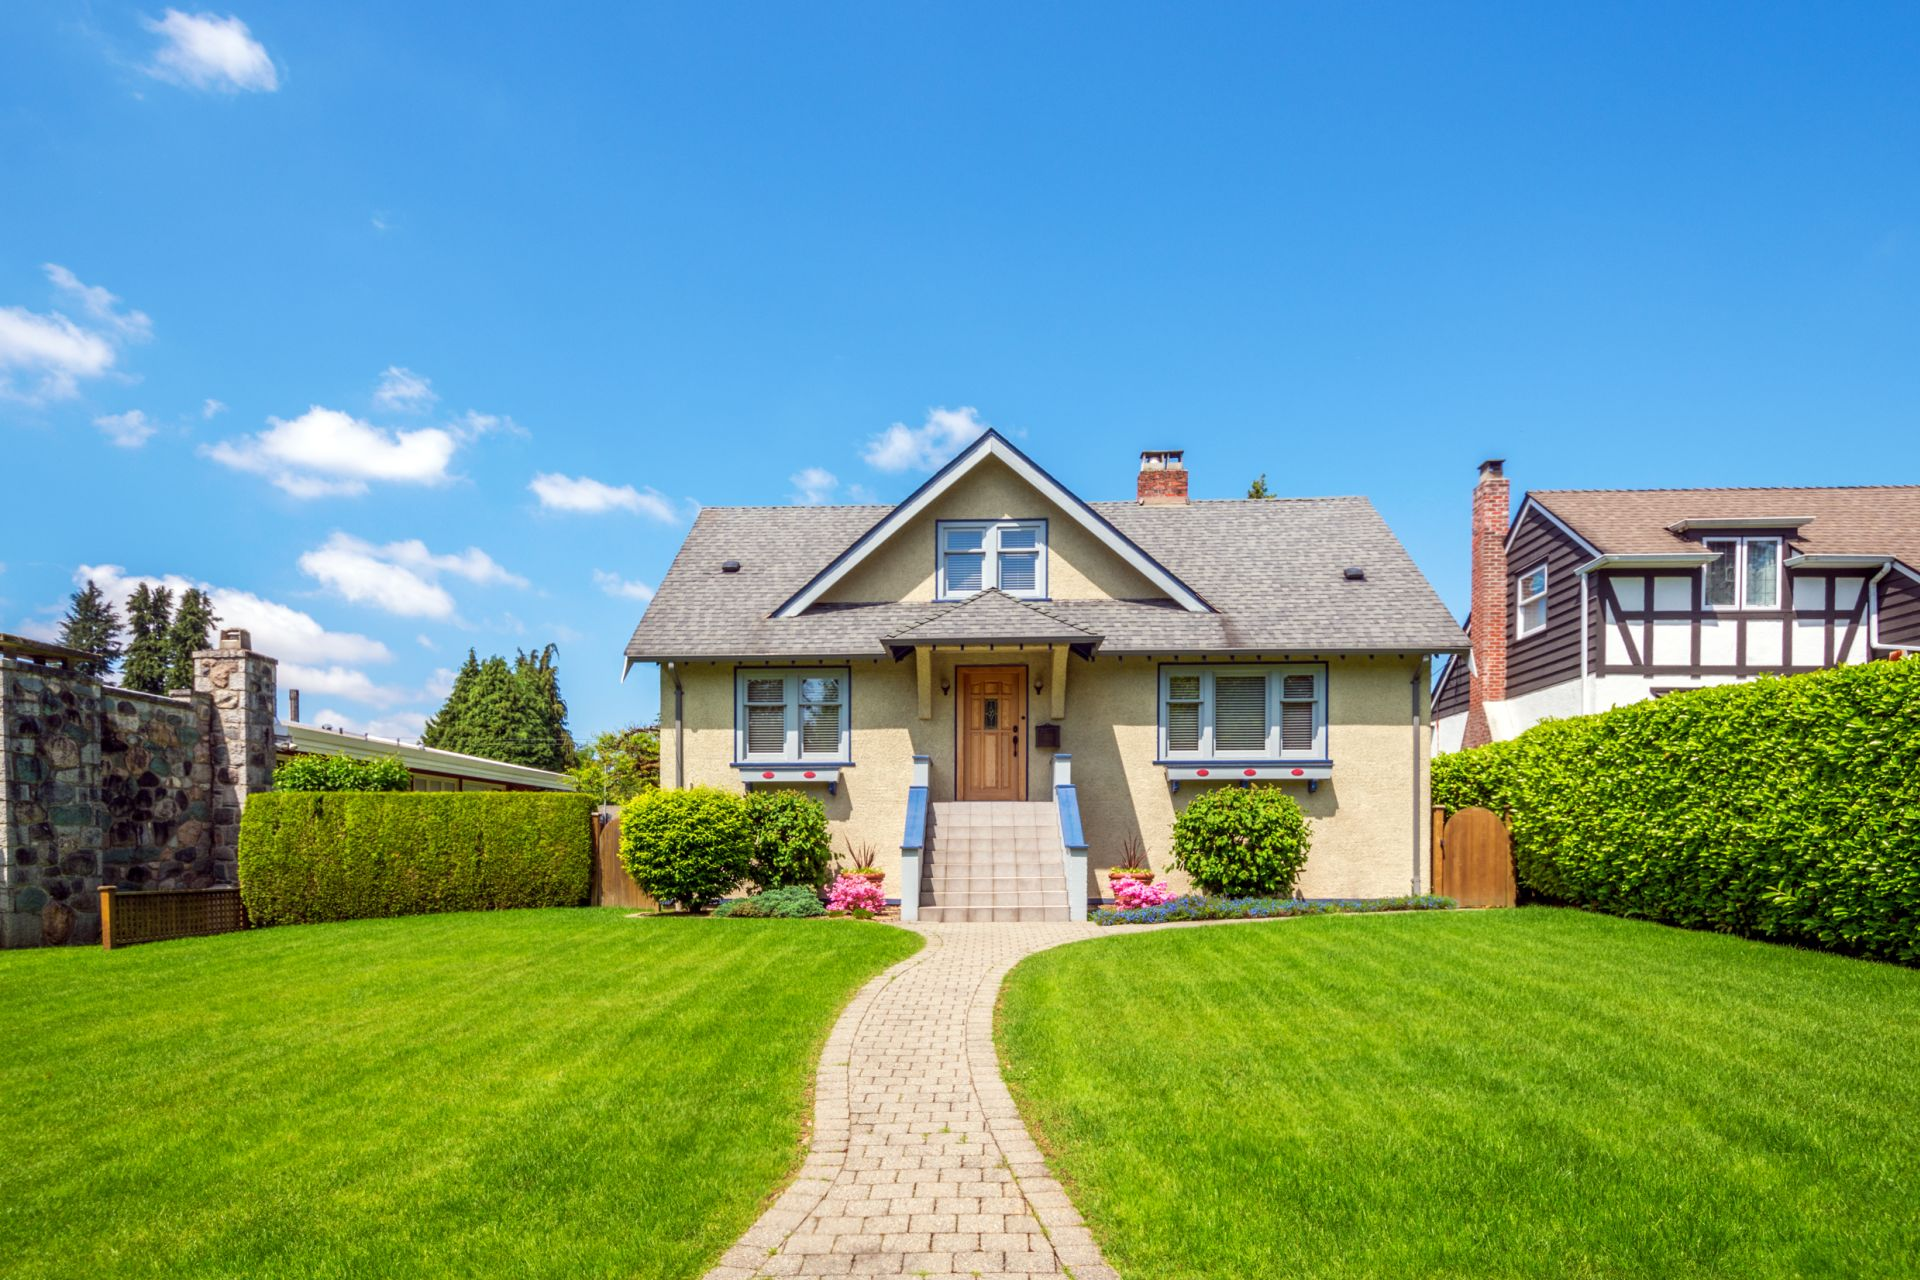 What to Focus on Before a Home Inspection